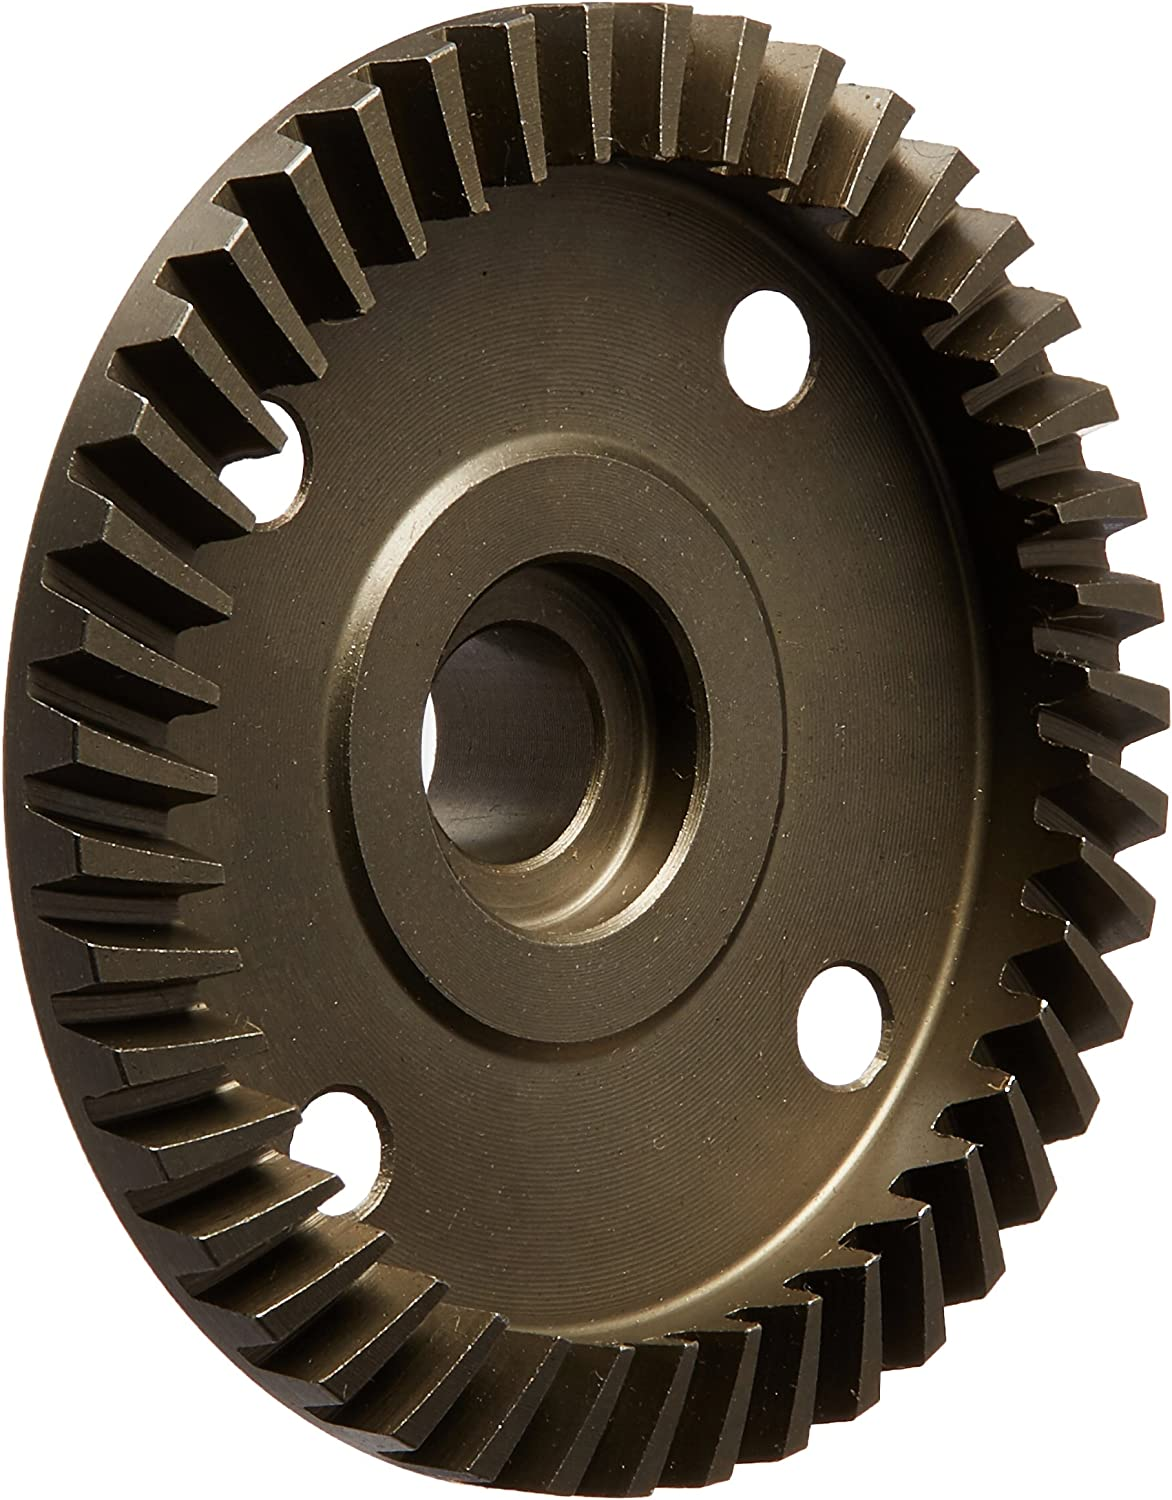 Duratrax 43T DXR8-E Differential Ring Gear